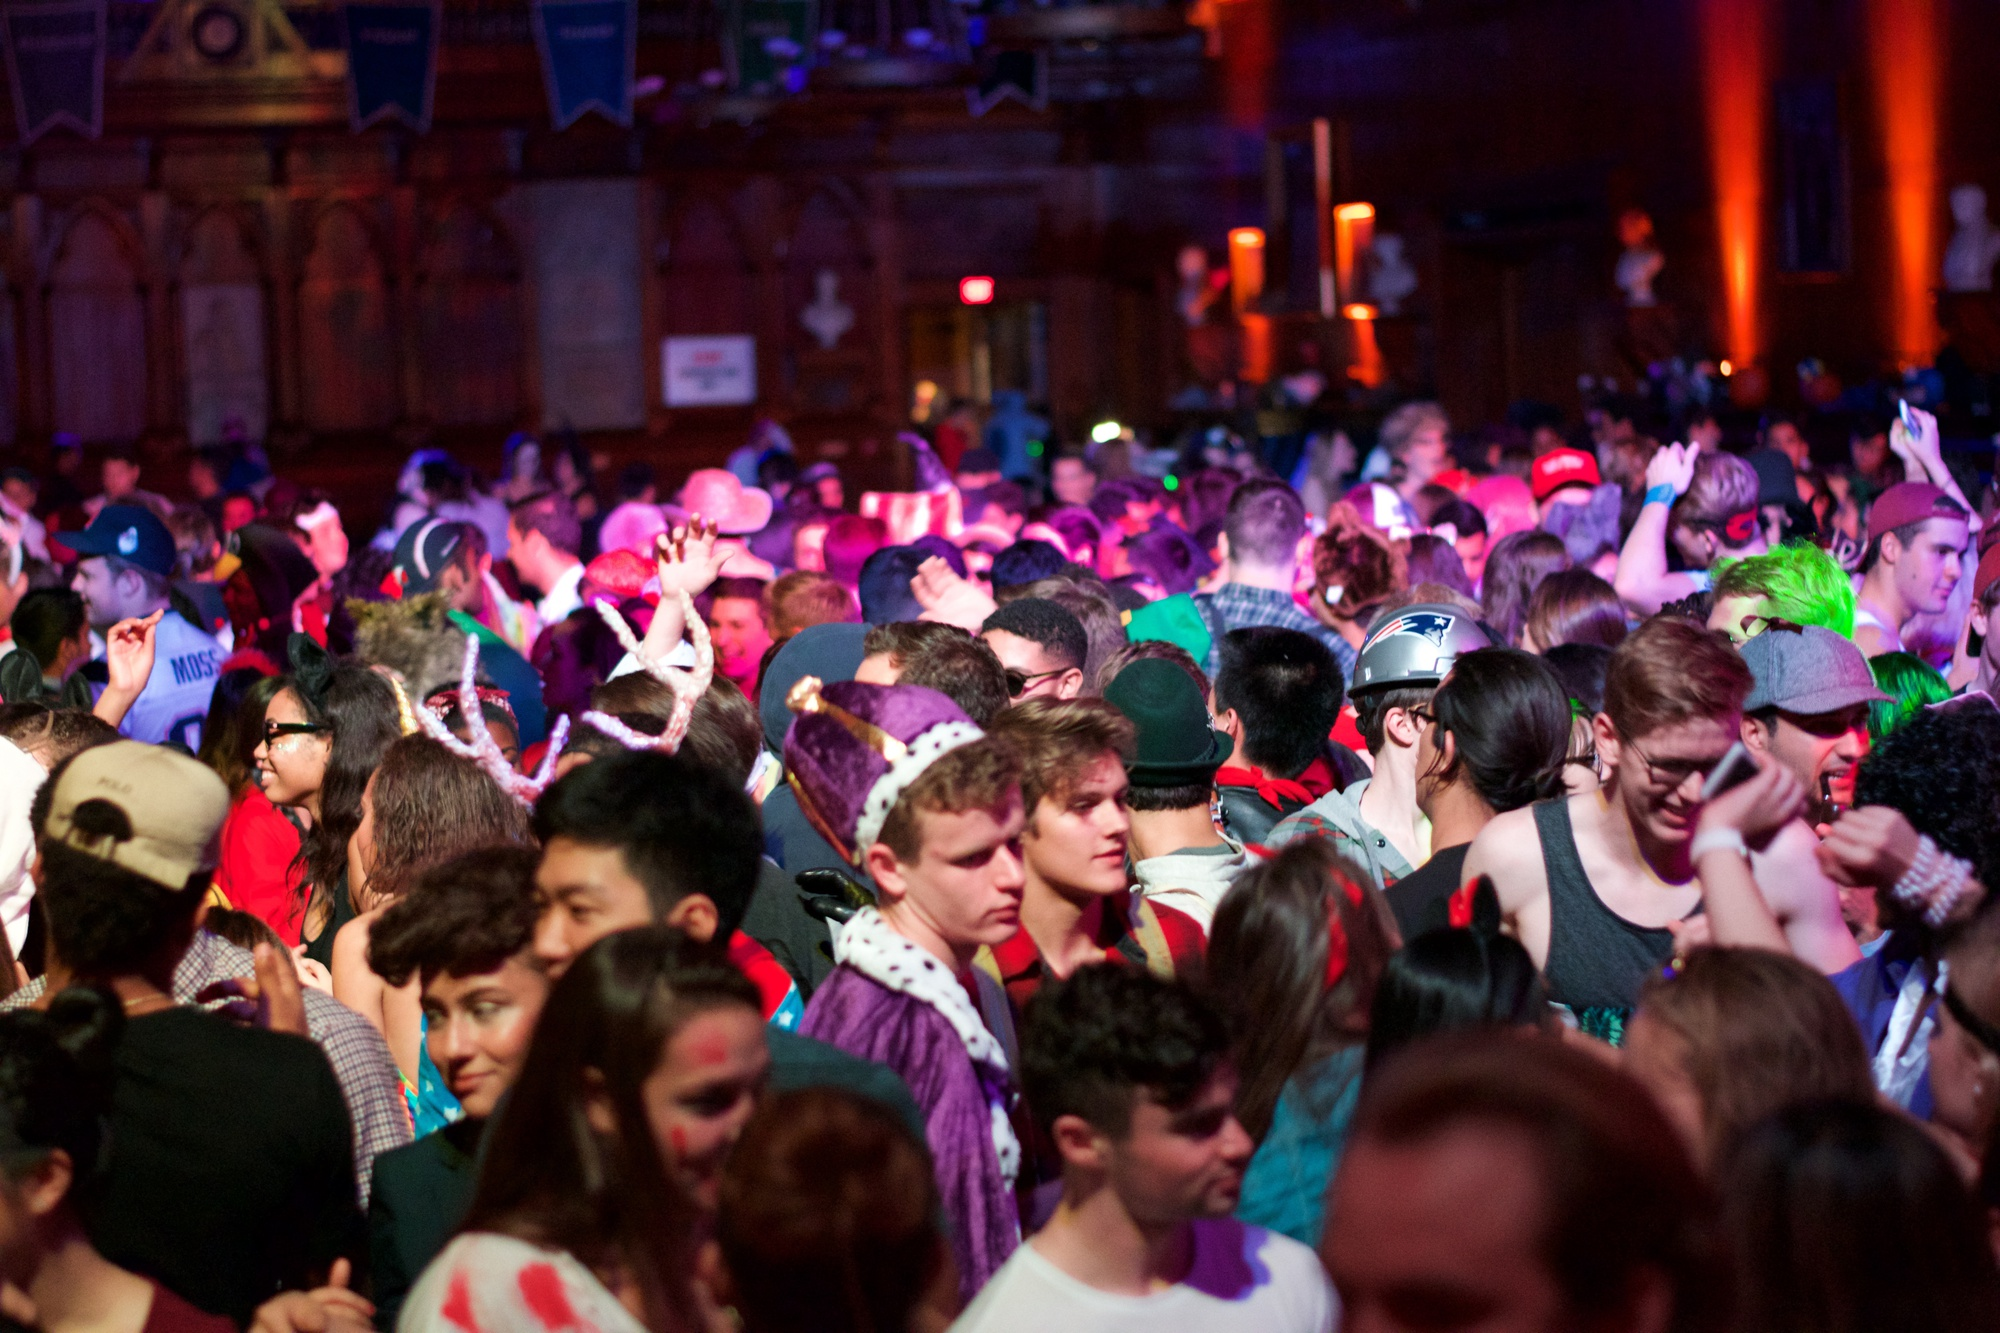 Students gather in Memorial Hall Saturday night for Haunted Hall 2, the second annual Halloween celebration hosted by the College Events Board, the First-Year Social Committee, and Cambridge Queen's Head.